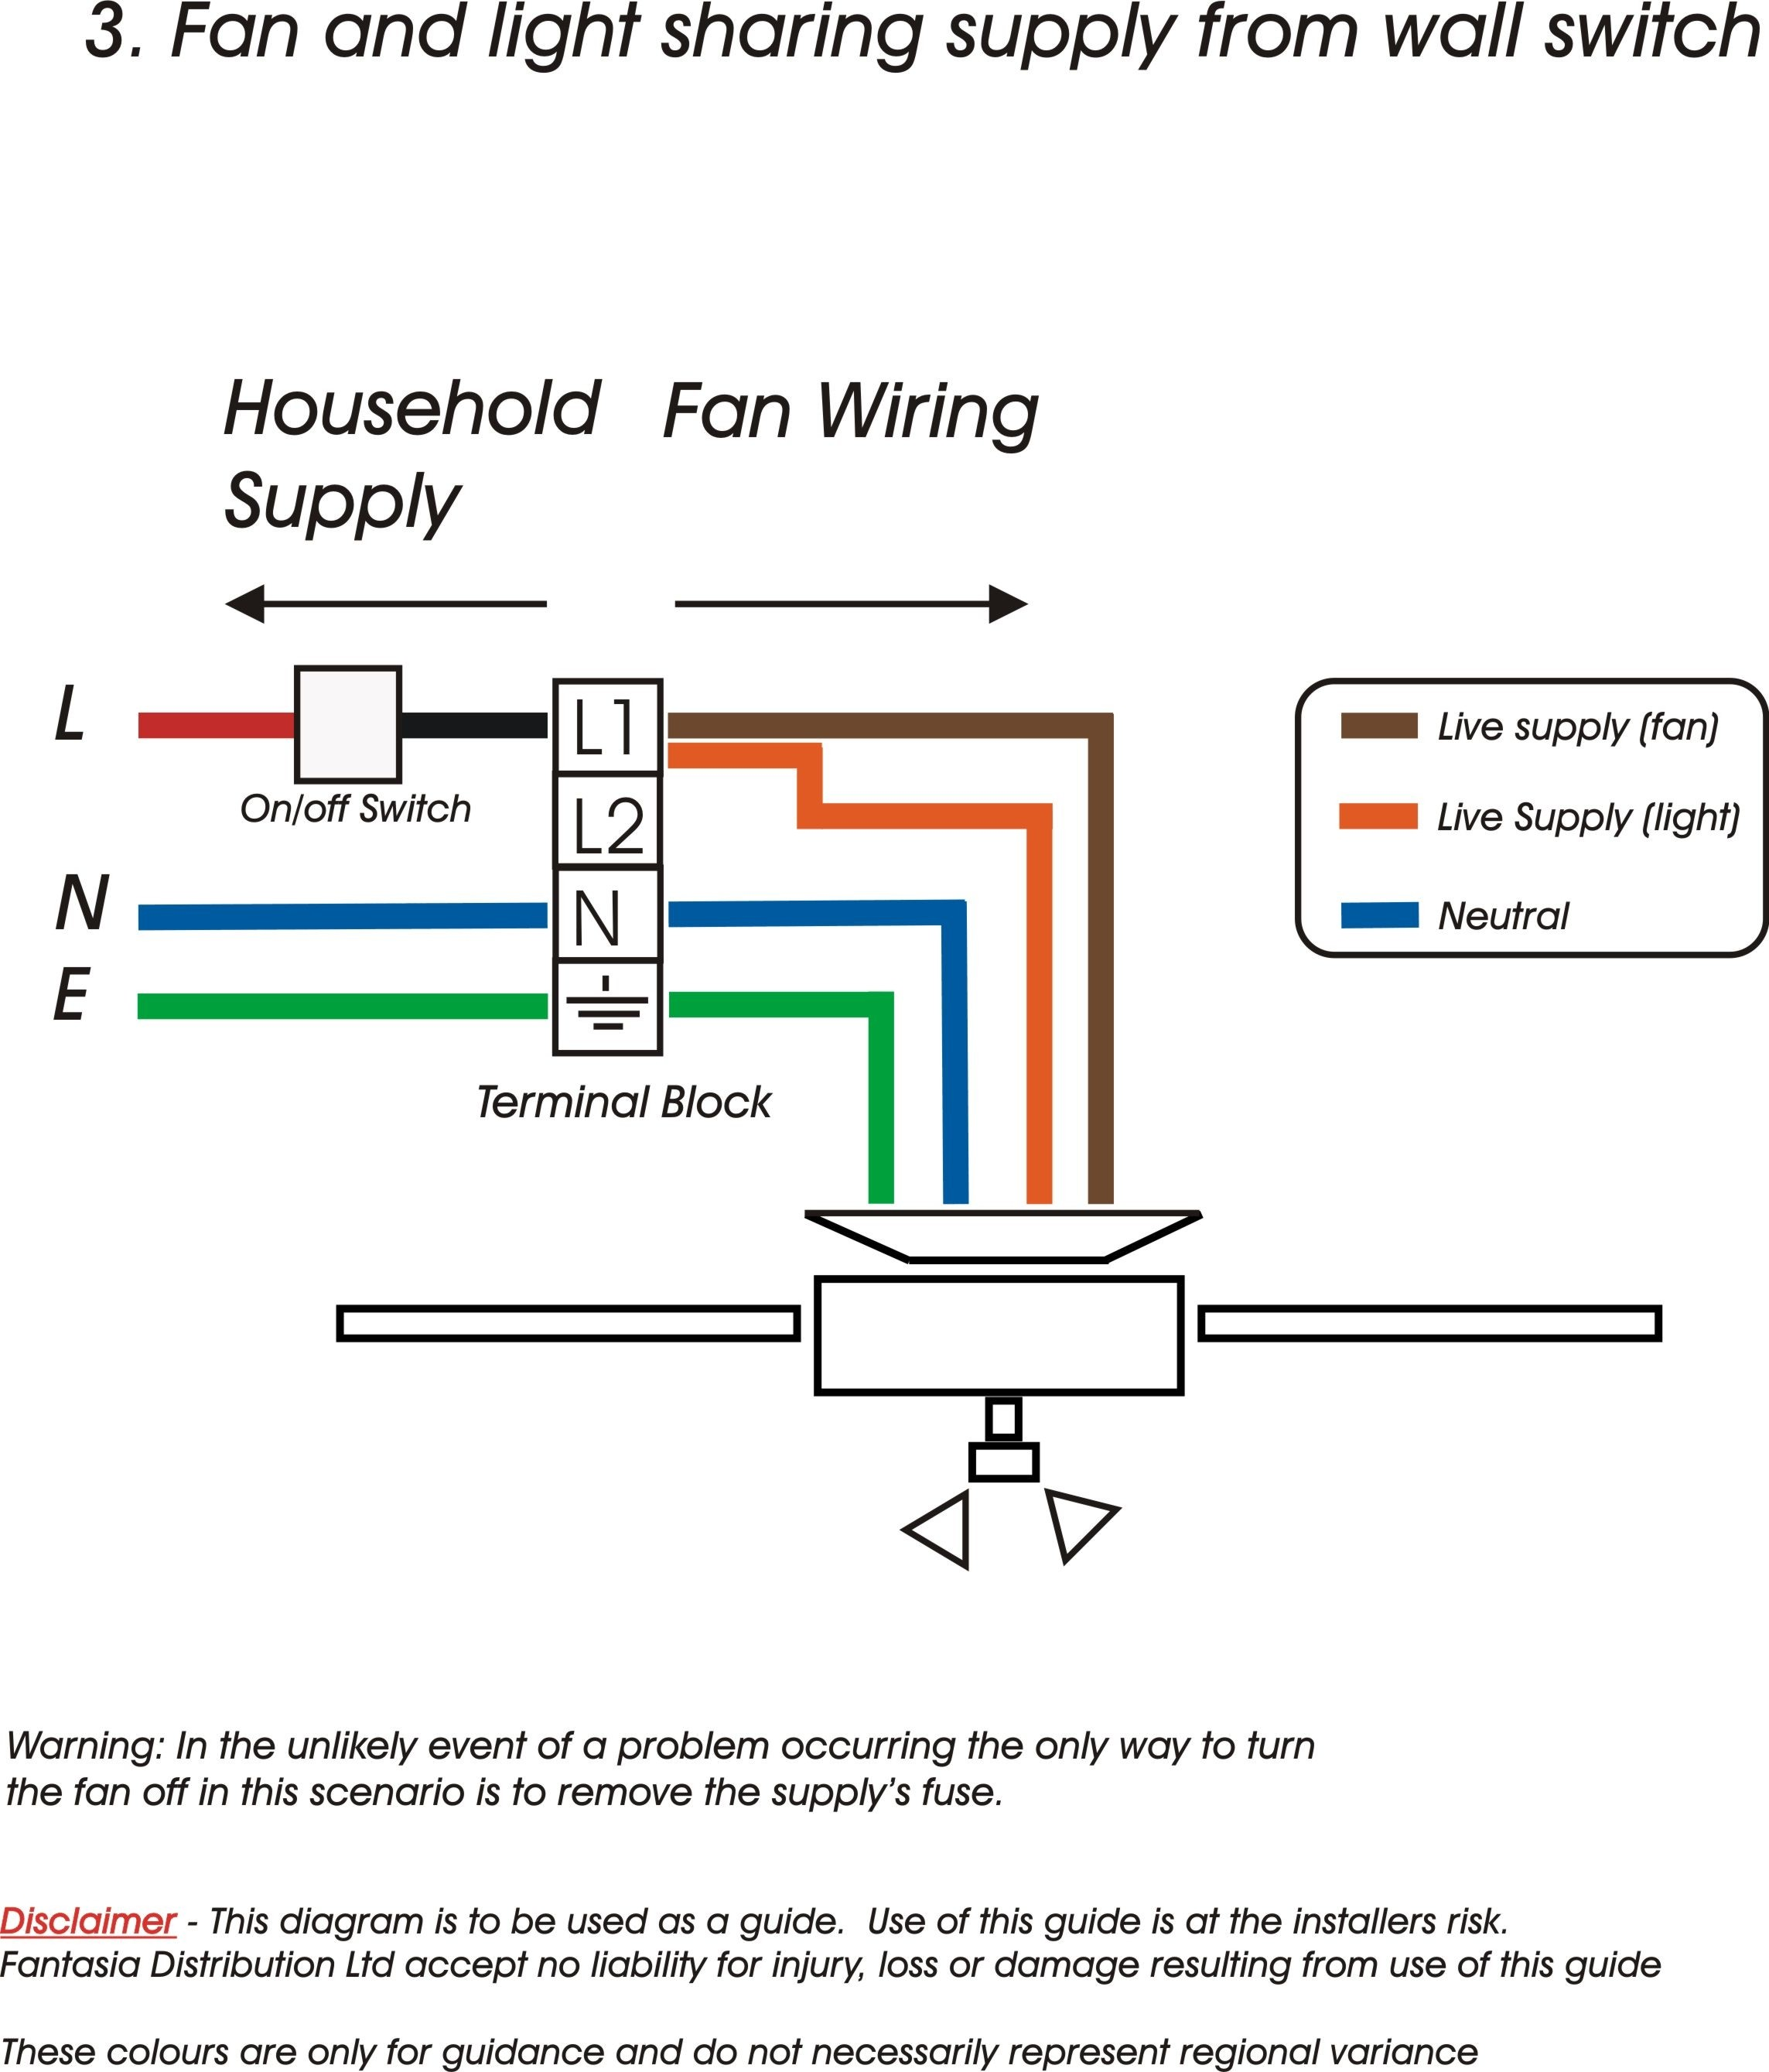 Dimmable ballast wiring diagram ceiling fan reverse switch wiring dimmable ballast wiring diagram ceiling fan reverse switch wiring diagram b2network of dimmable ballast wiring diagram mozeypictures Images